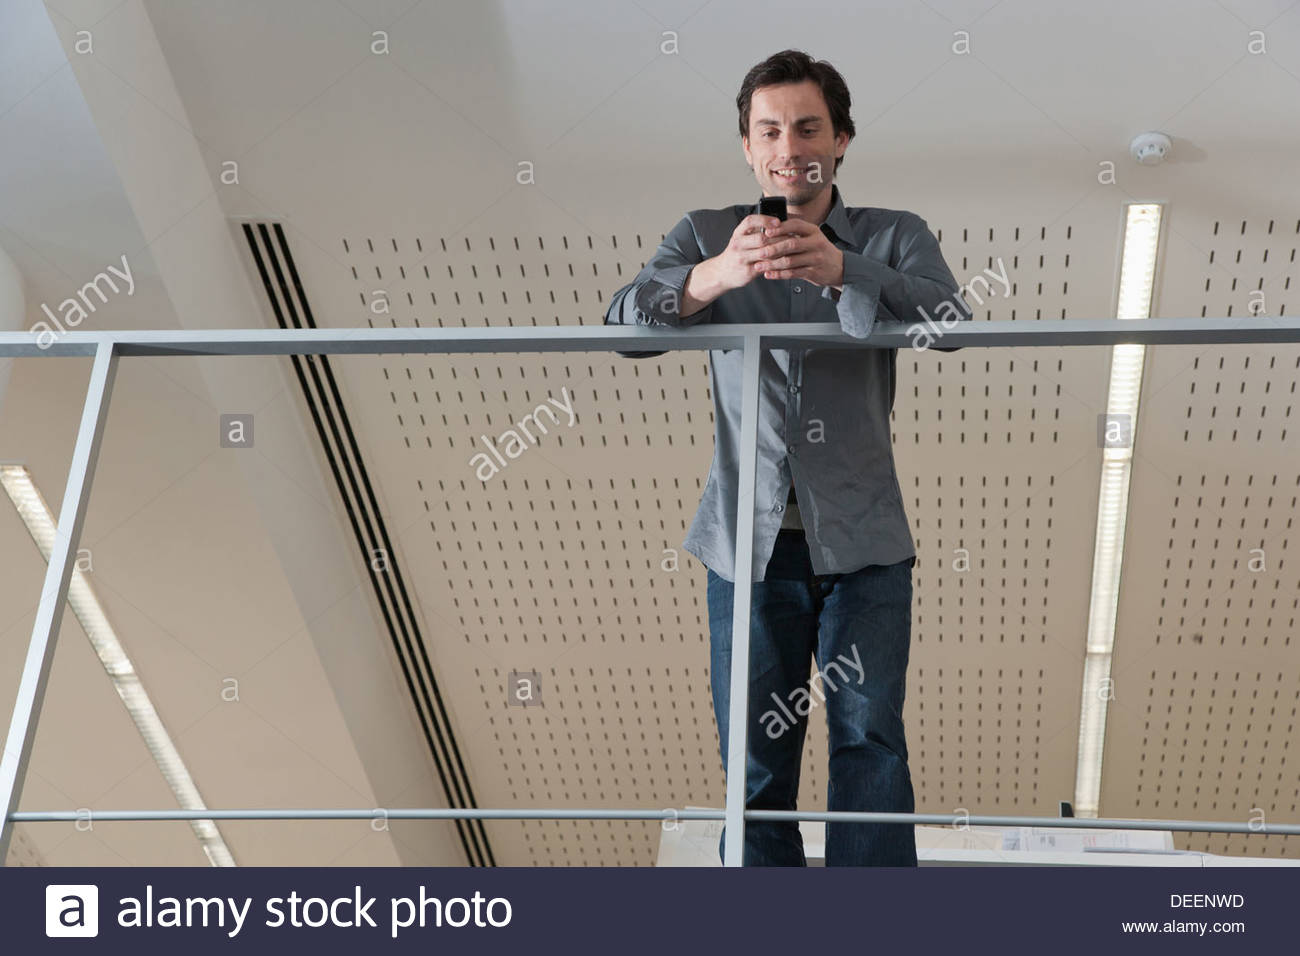 Businessman leaning on rail avec using cell phone in office Photo Stock